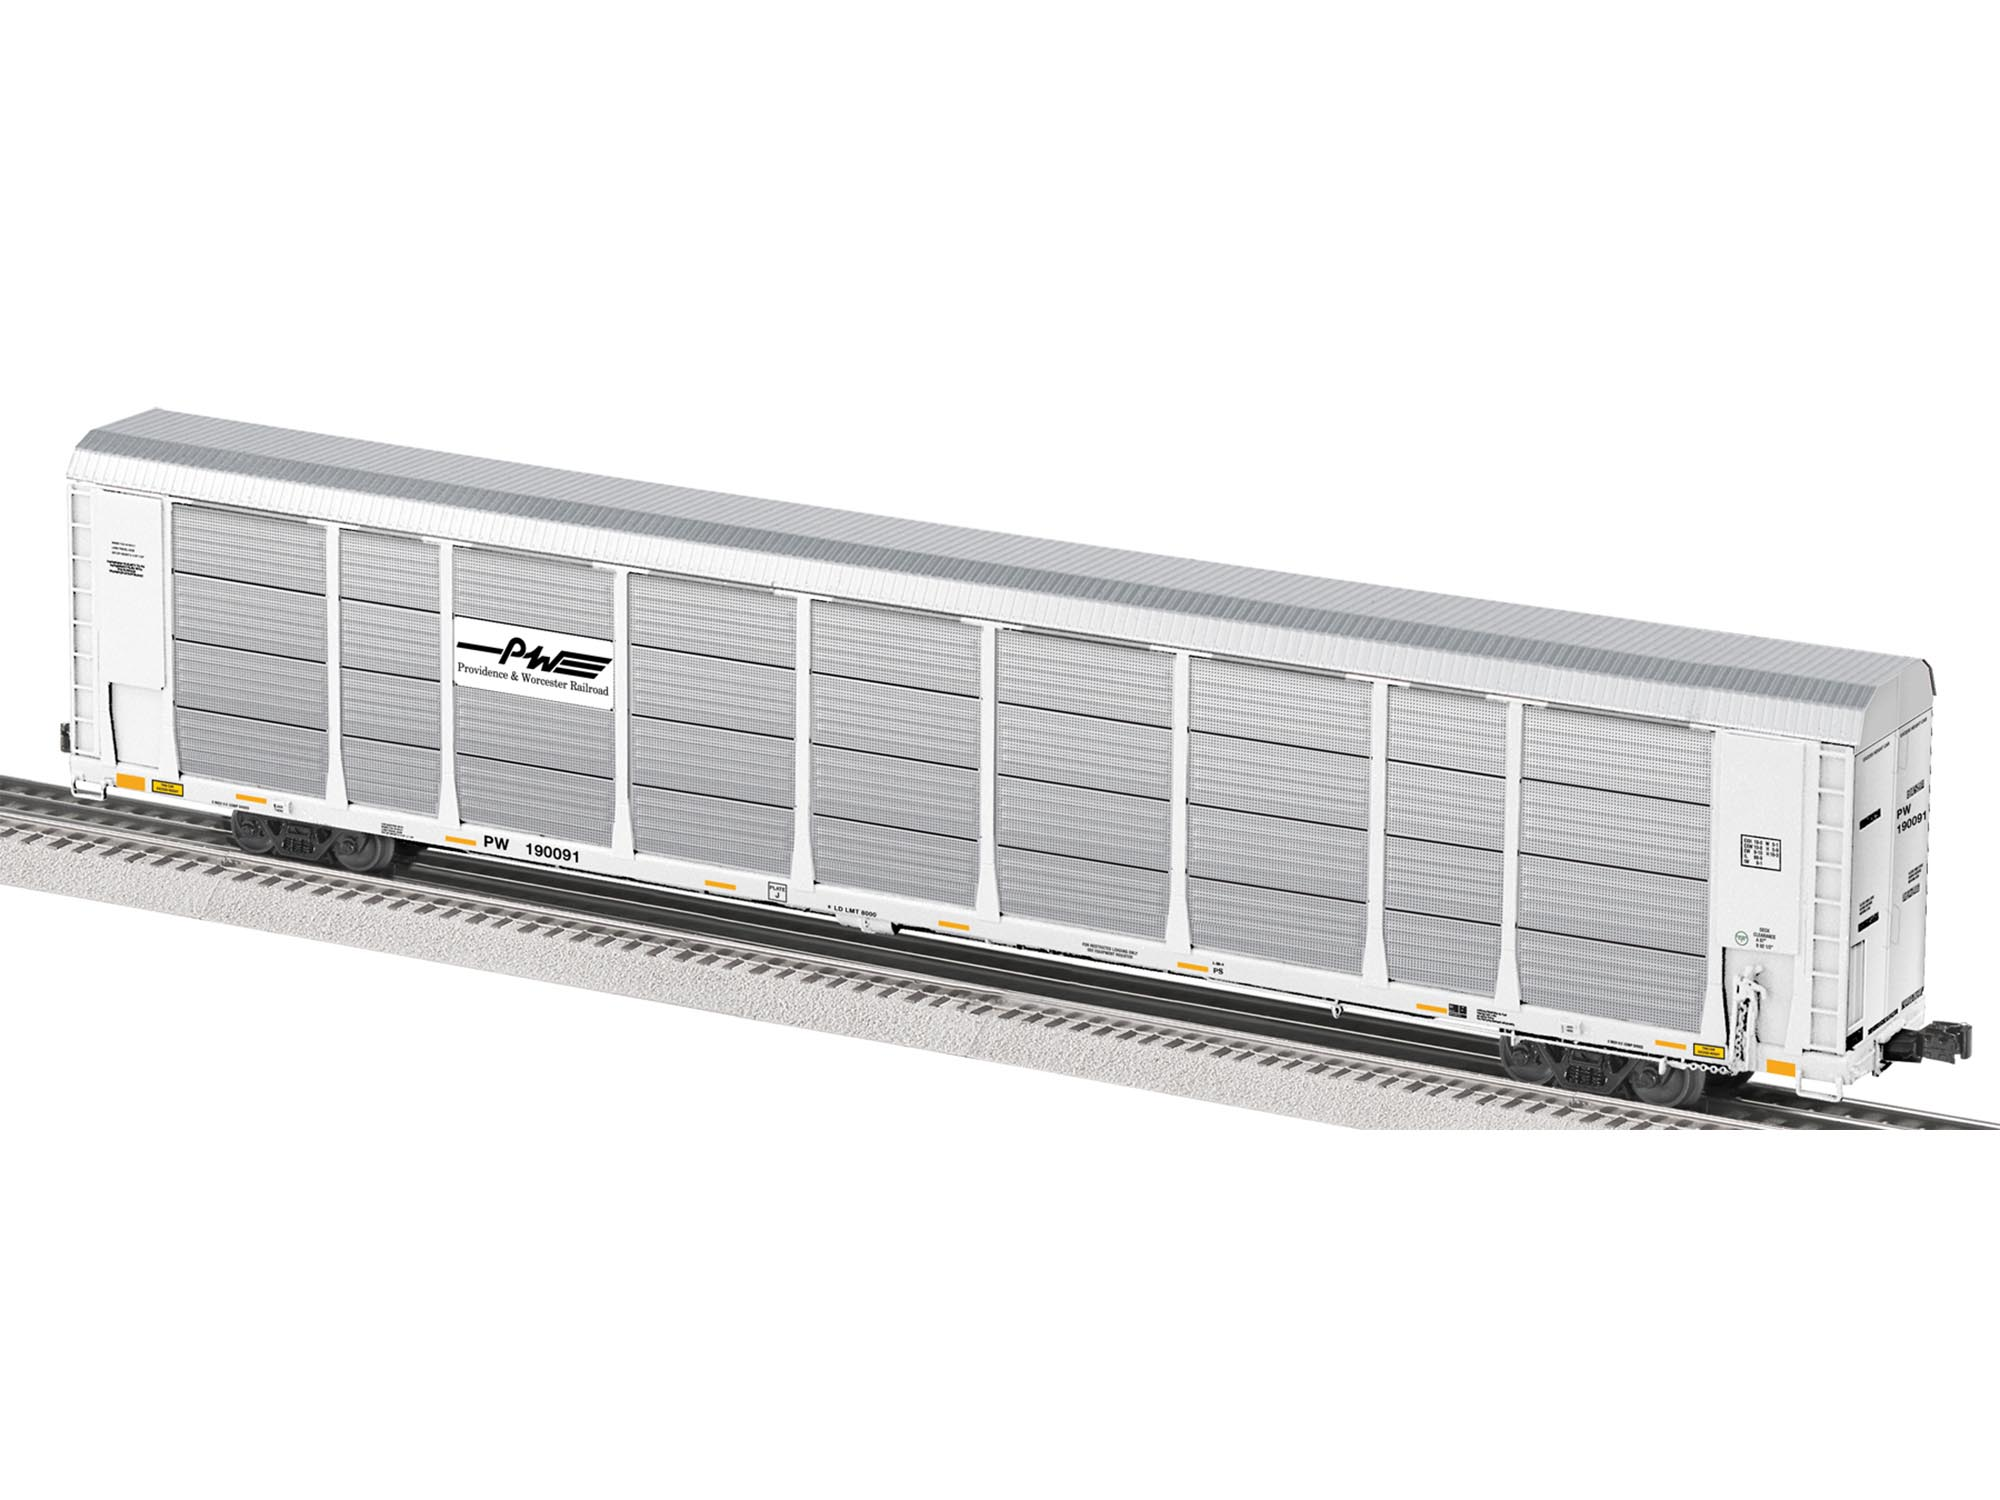 82501 Providence & Worcester 89' Auto Rack #190091